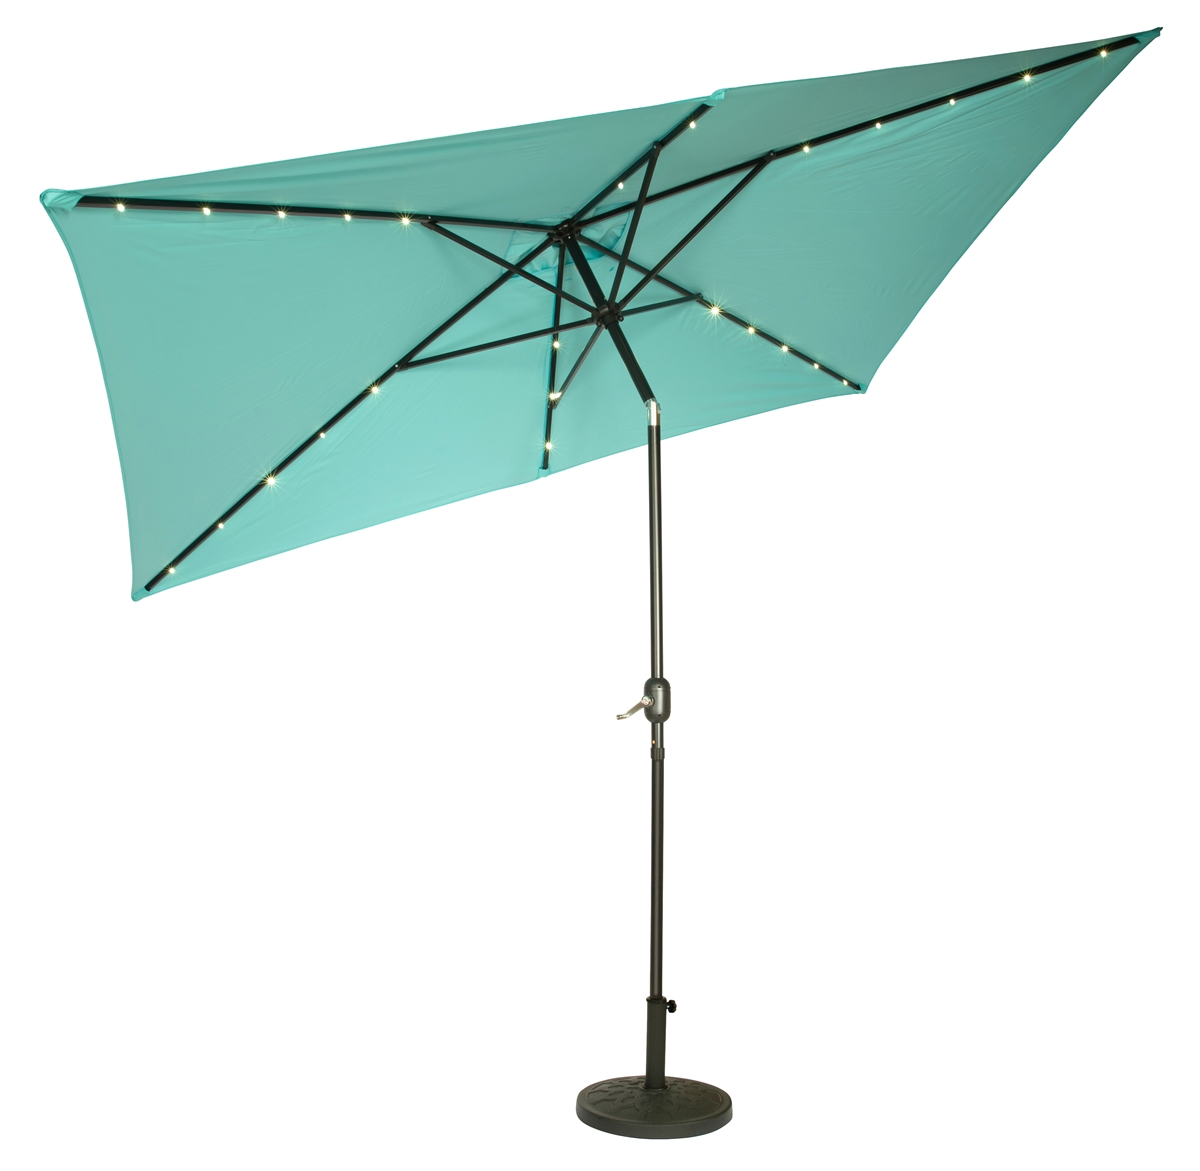 10u0027 X 6.5u0027 Rectangular Solar Powered LED Lighted Patio Umbrella By  Trademark Innovations (Teal)